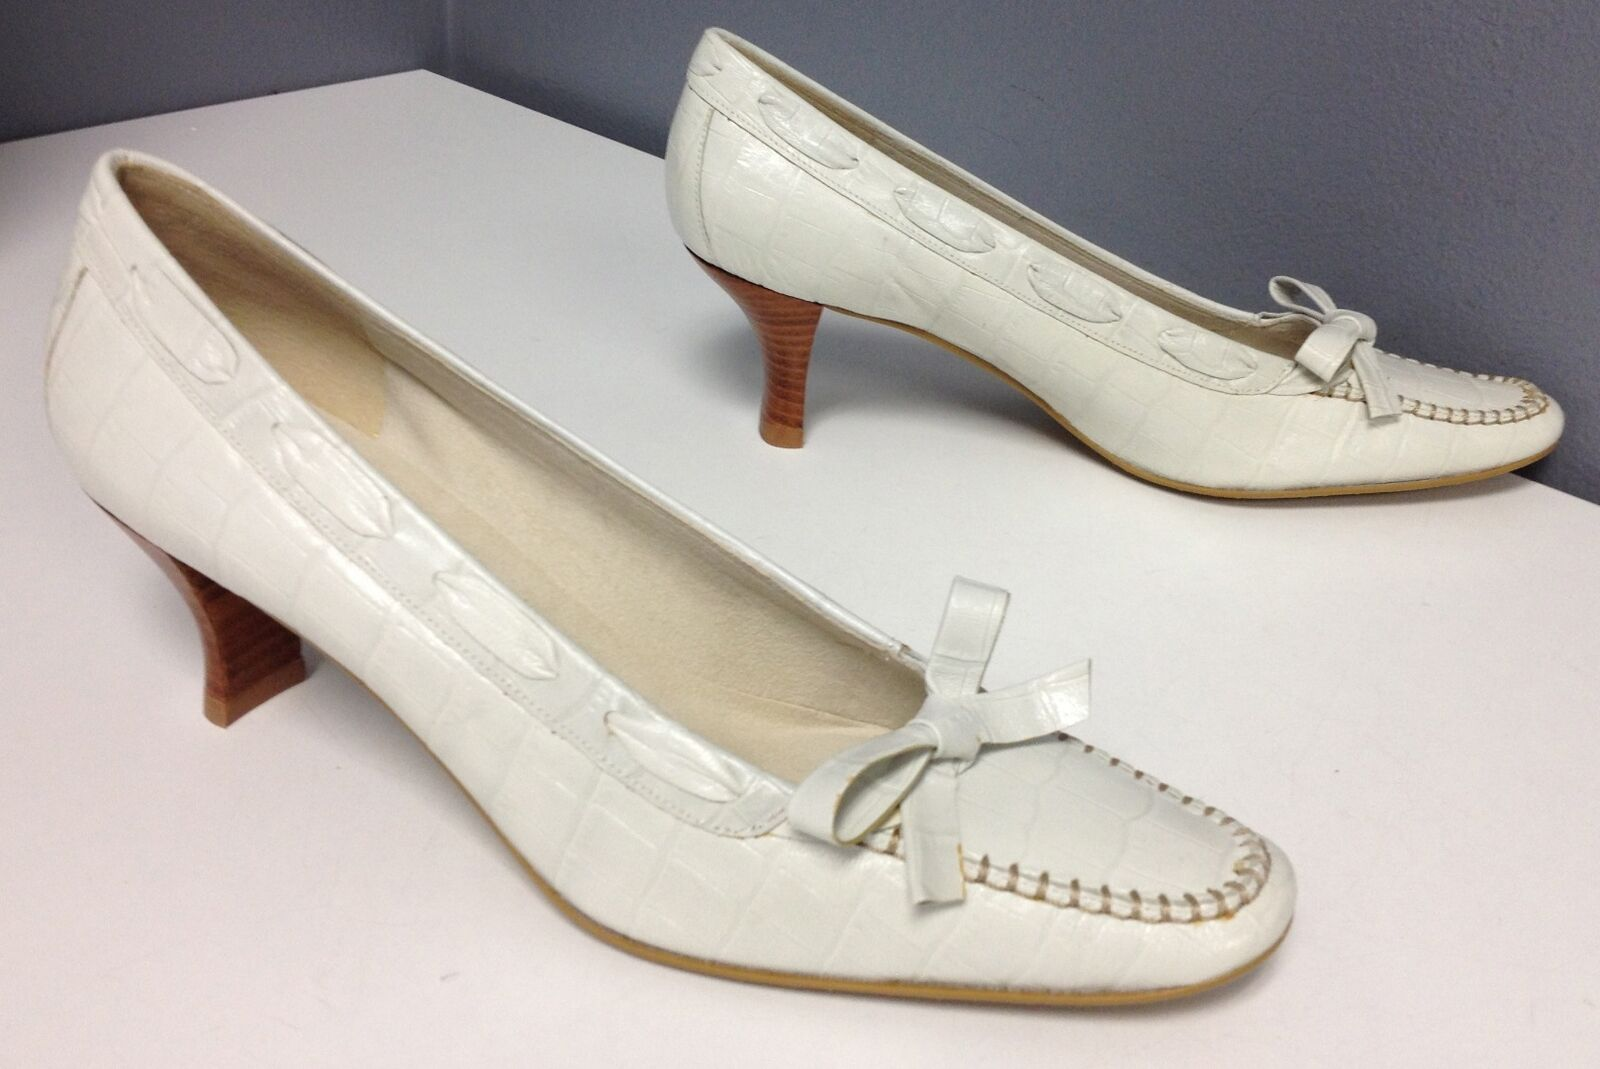 STUART WEITZMAN WEISS Embossed Leder Bow Top Mid Heel Slip On Pump Sz 8N B4325